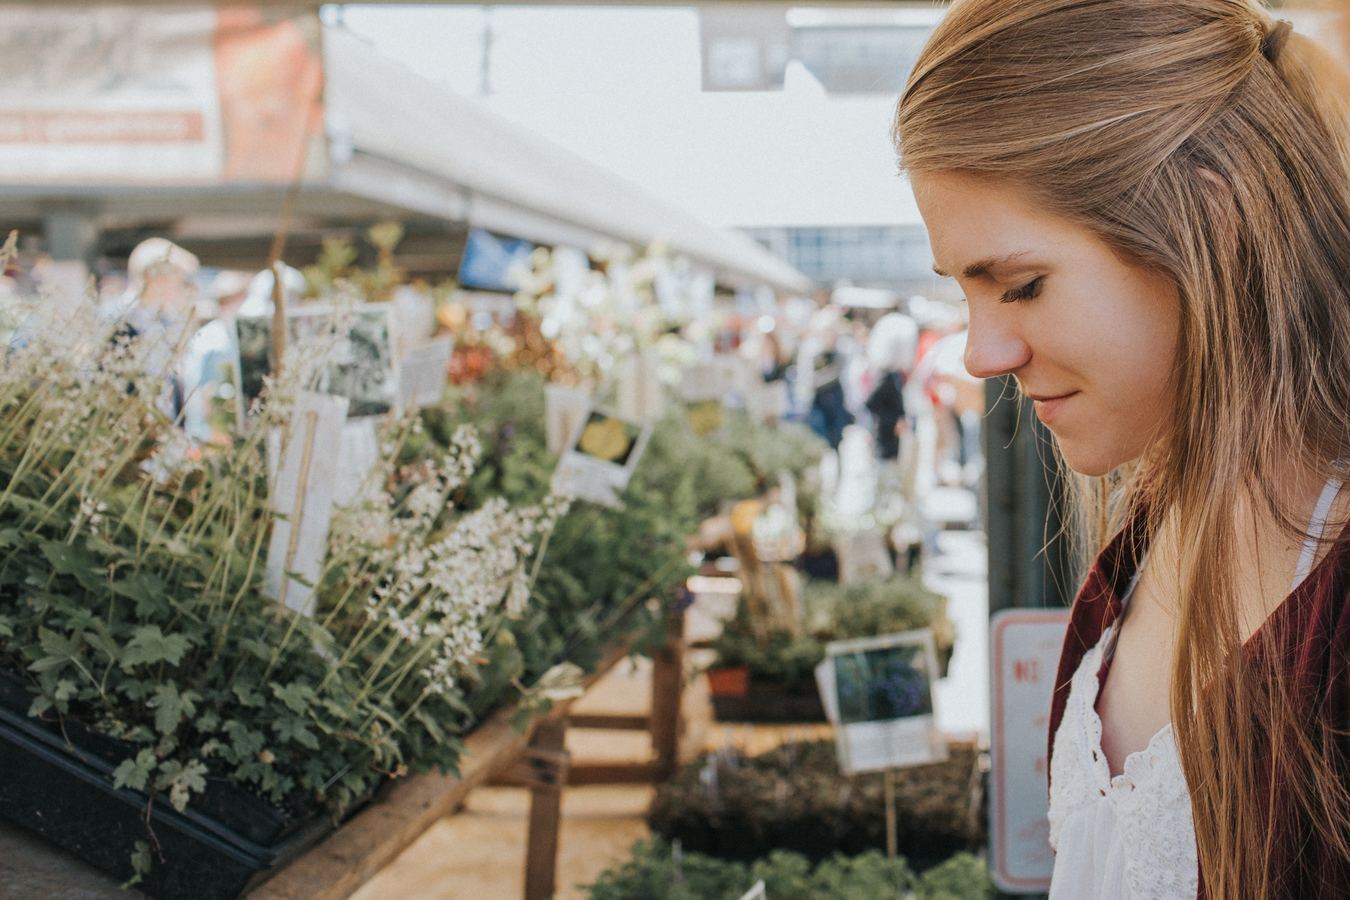 How Farmers Markets Can Use Online Marketplace Technology